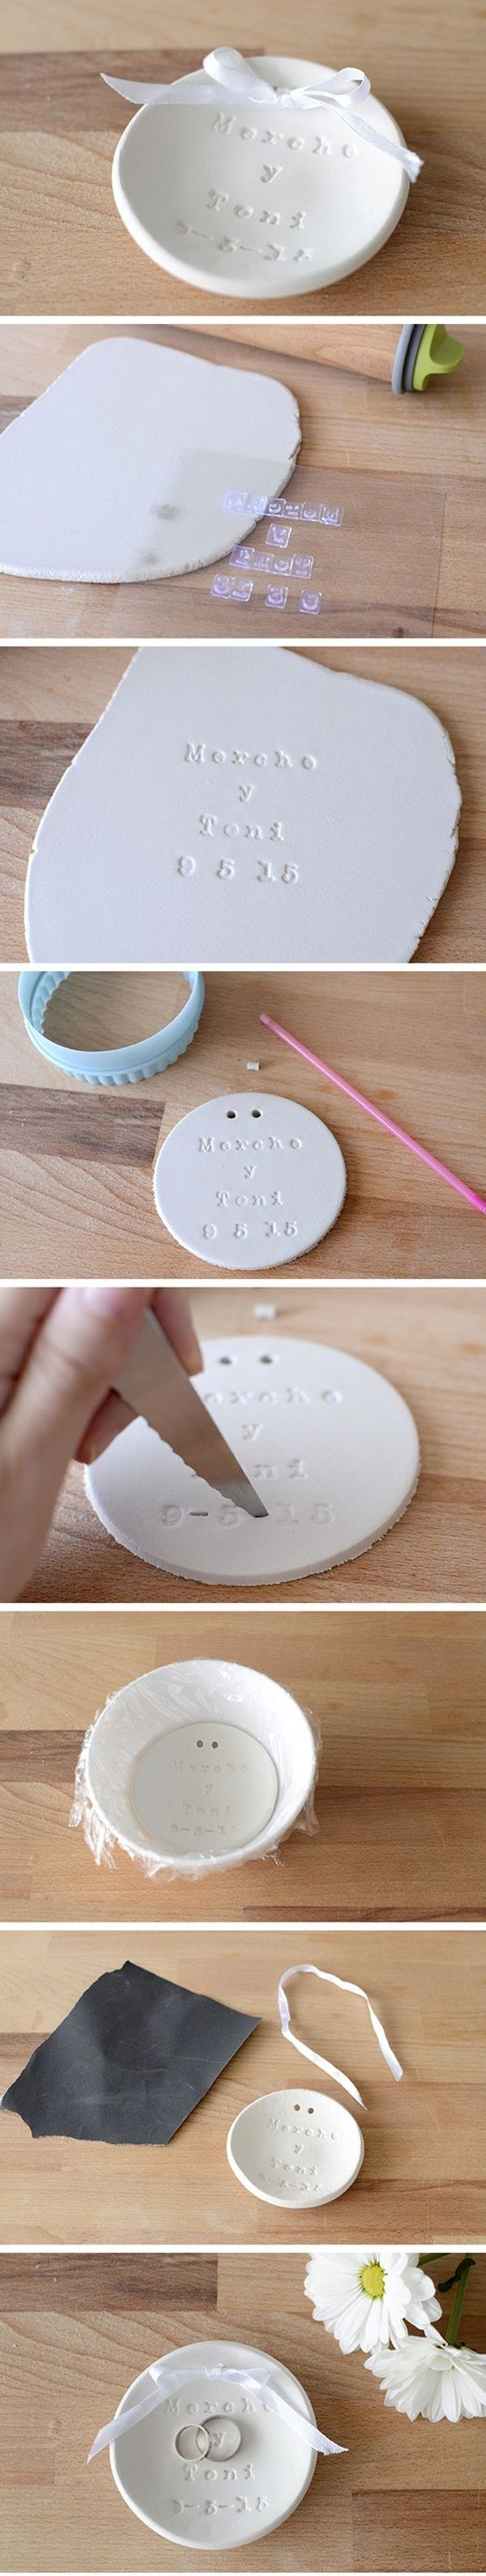 With these Air Dry Clay Projects and Ideas for Kids, we